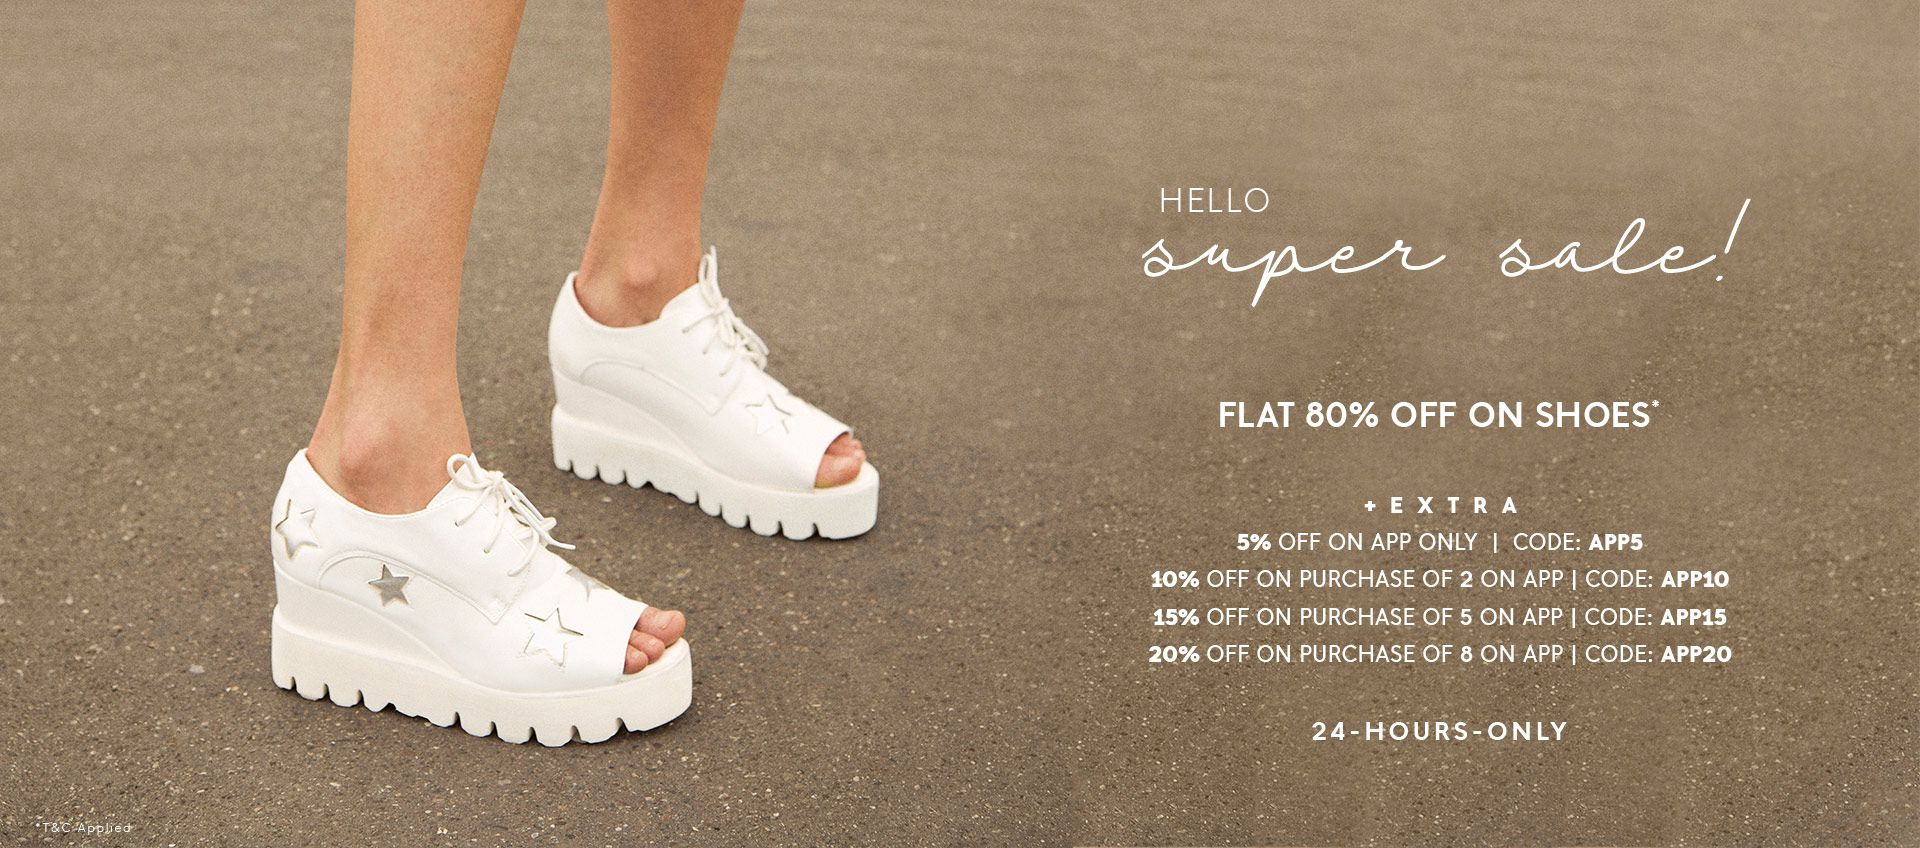 FLAT 80% OFF ON SHOES